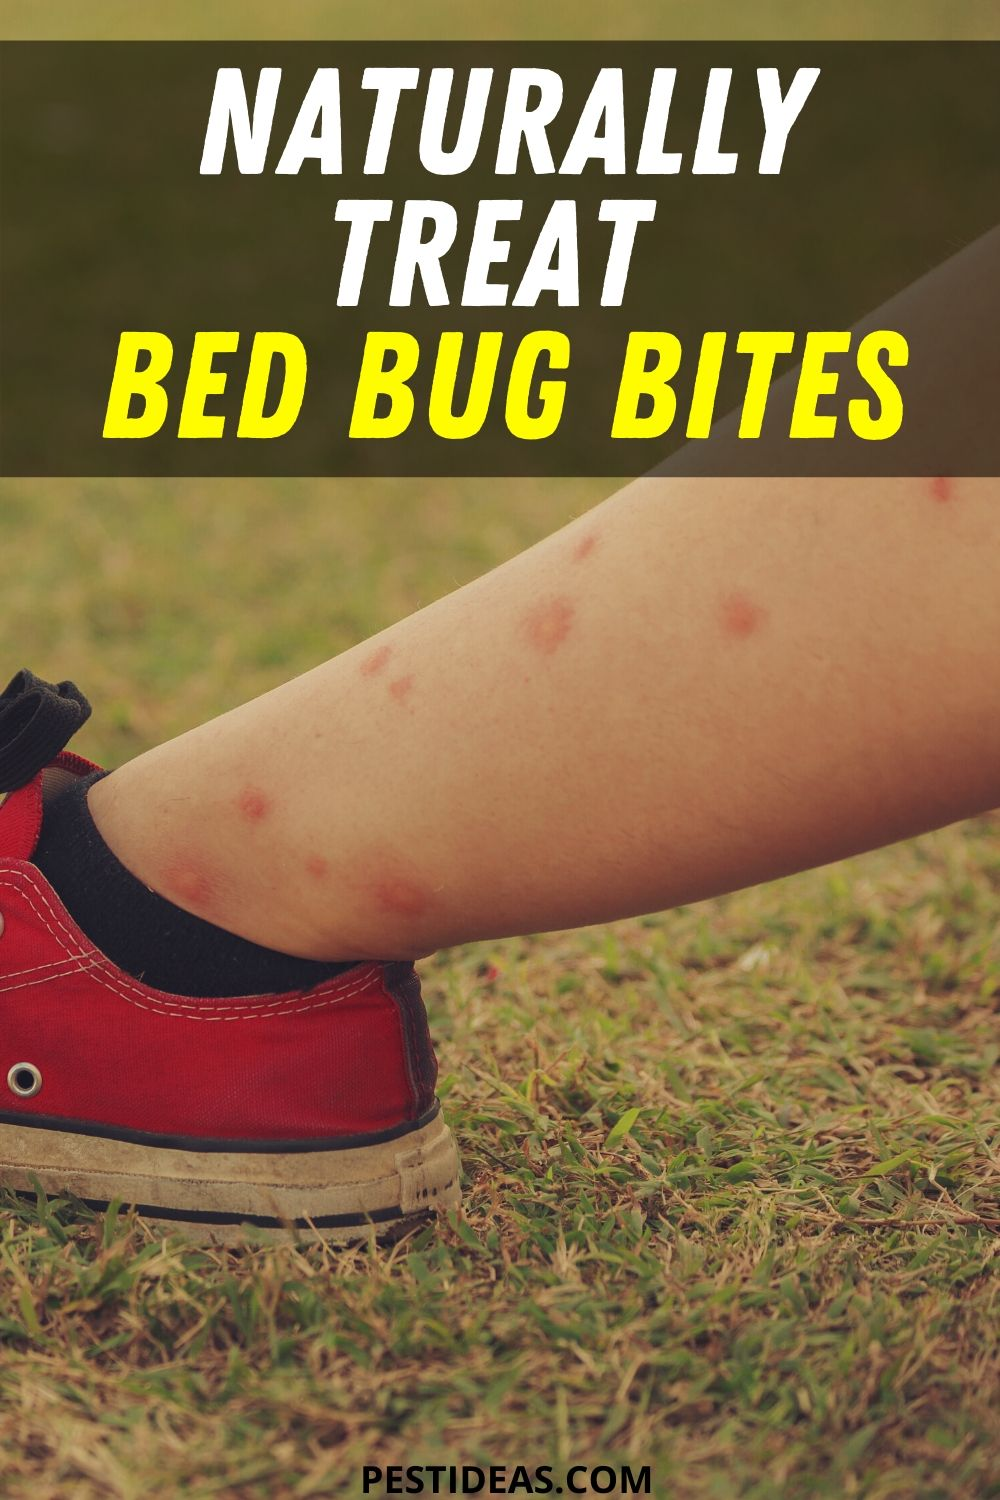 Naturally Treat Bed Bug Bites